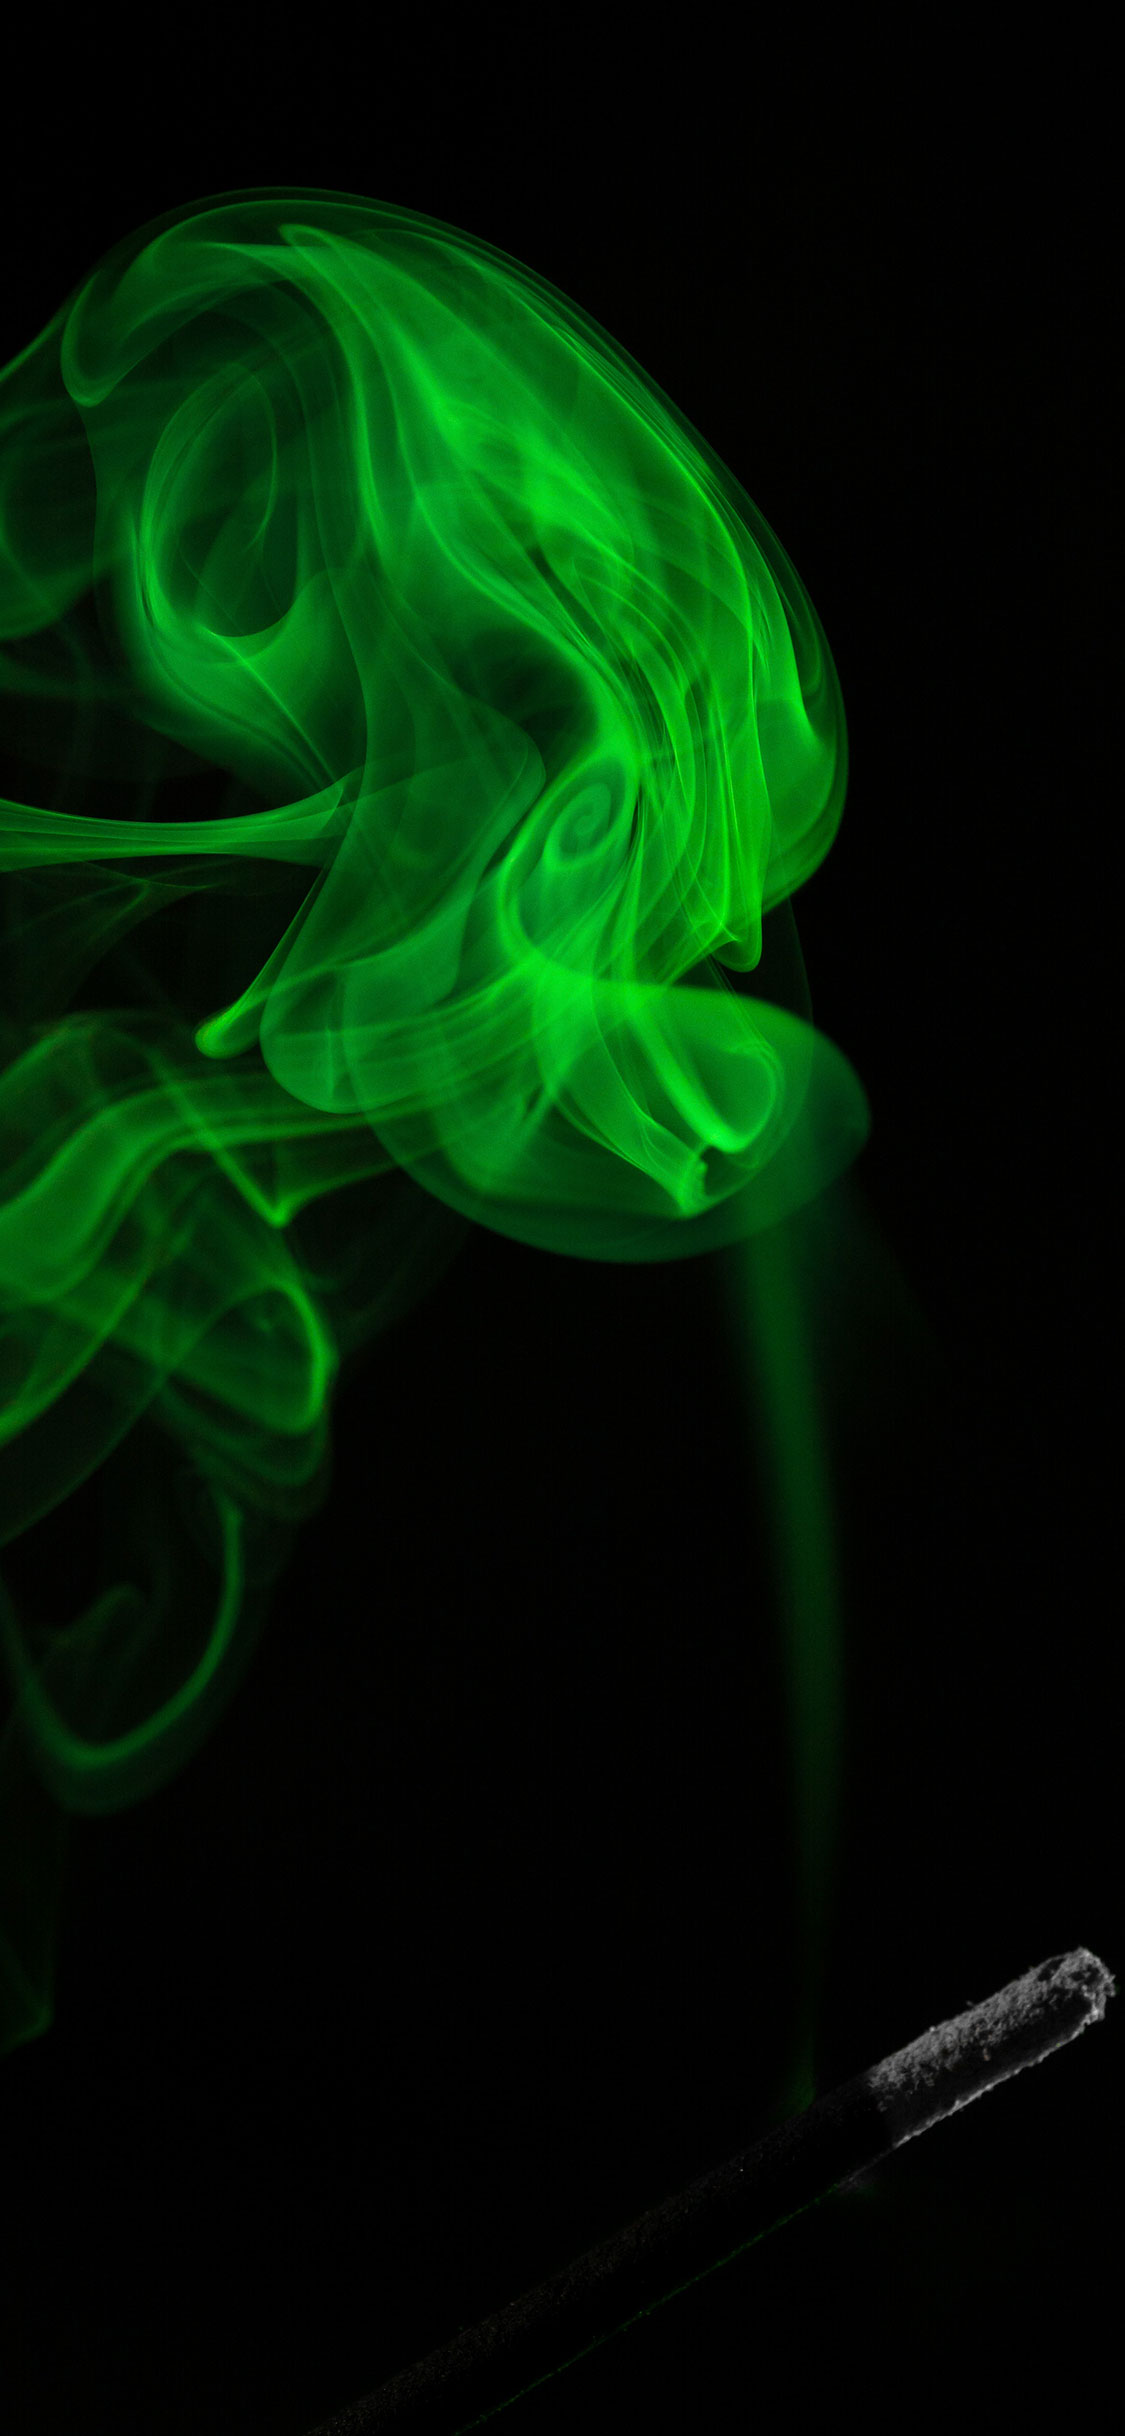 iPhone wallpaper smoke green Smoke